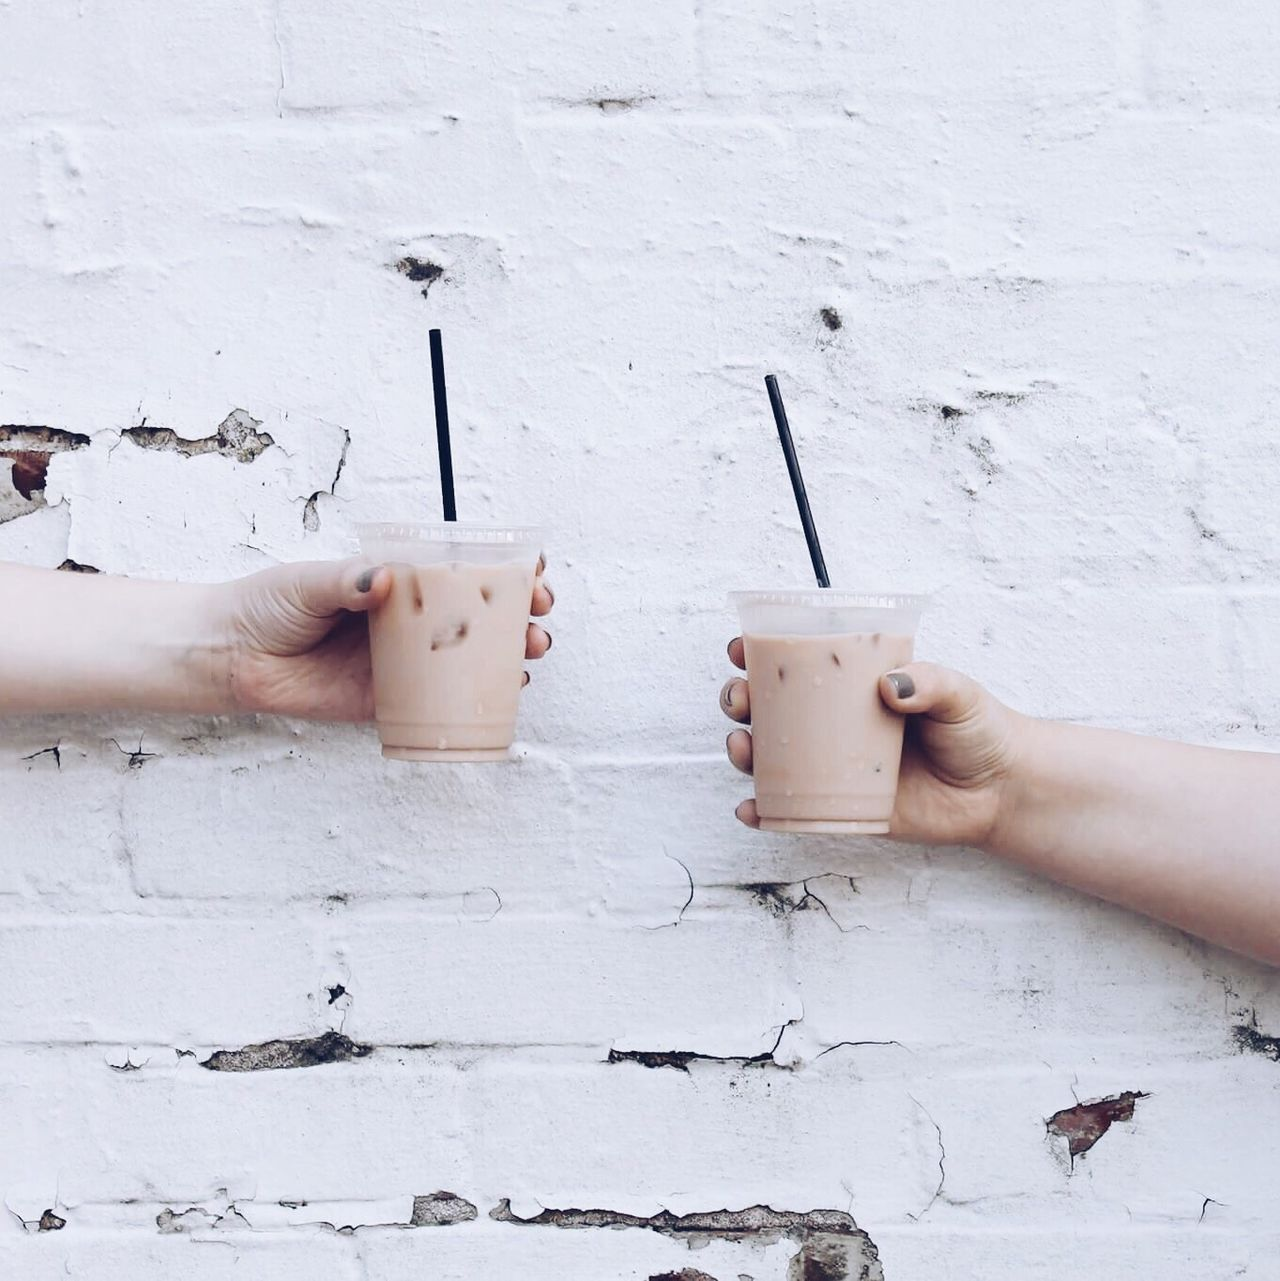 Human Hand Human Body Part One Person Human Finger Holding Real People Day Leisure Activity DIY People Lifestyles Outdoors Women Architecture One Woman Only Adult Close-up Coffee Iced Summer